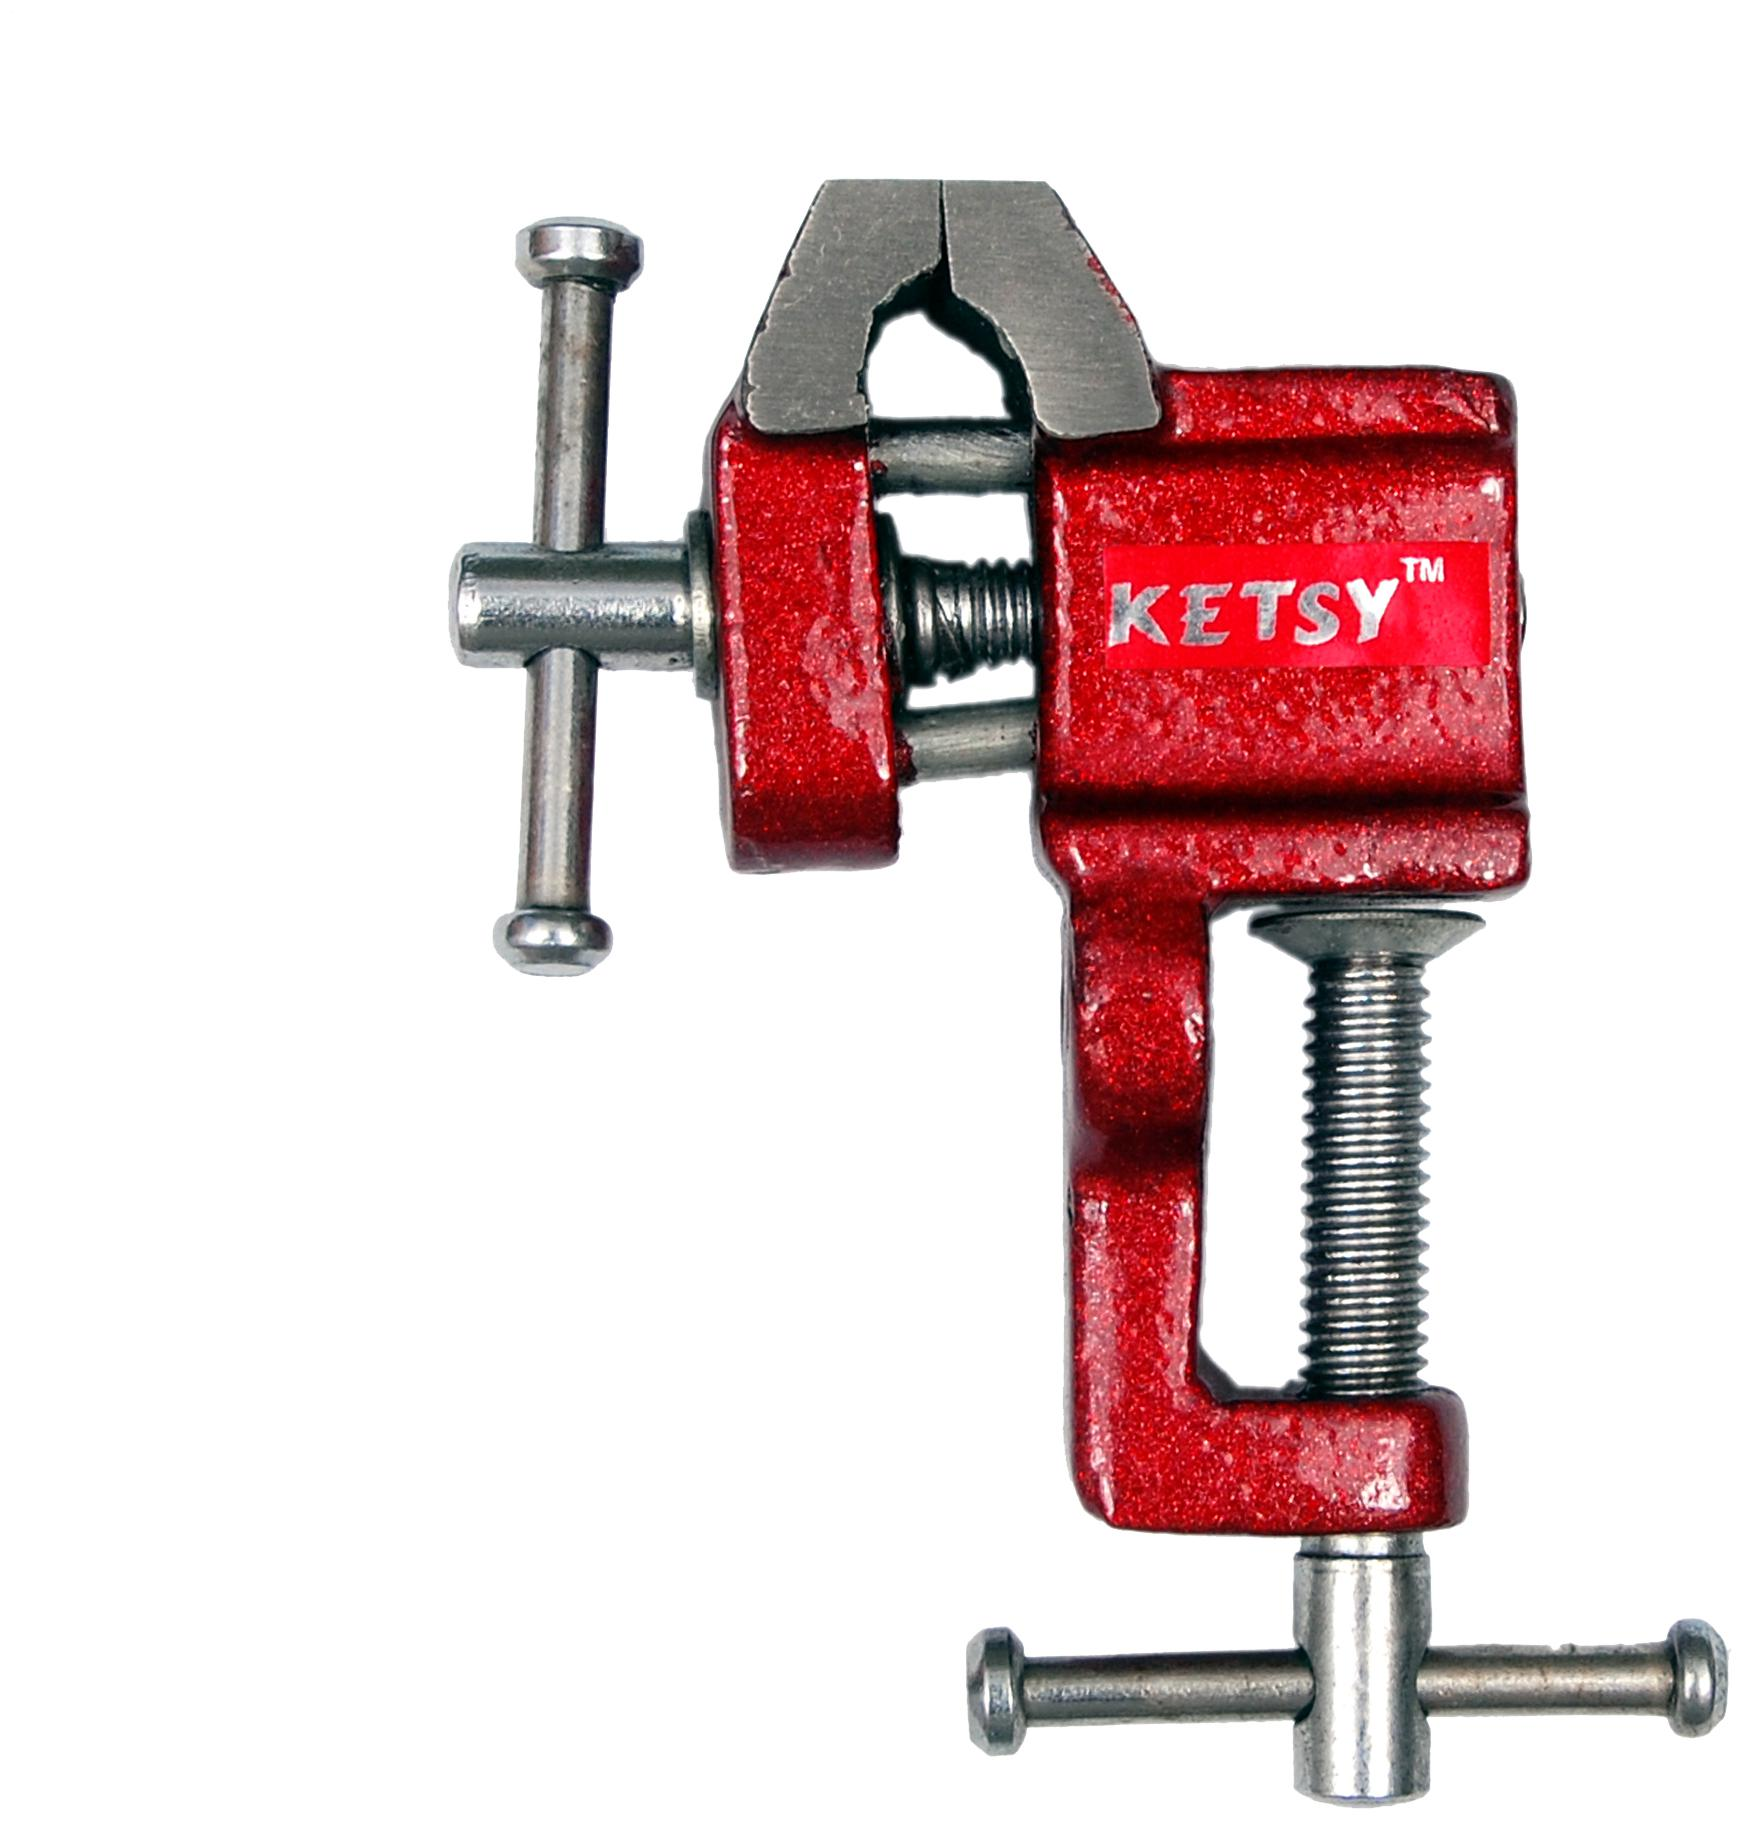 KETSY 842 Red Iron Cast Baby Vice 25 mm With clamp